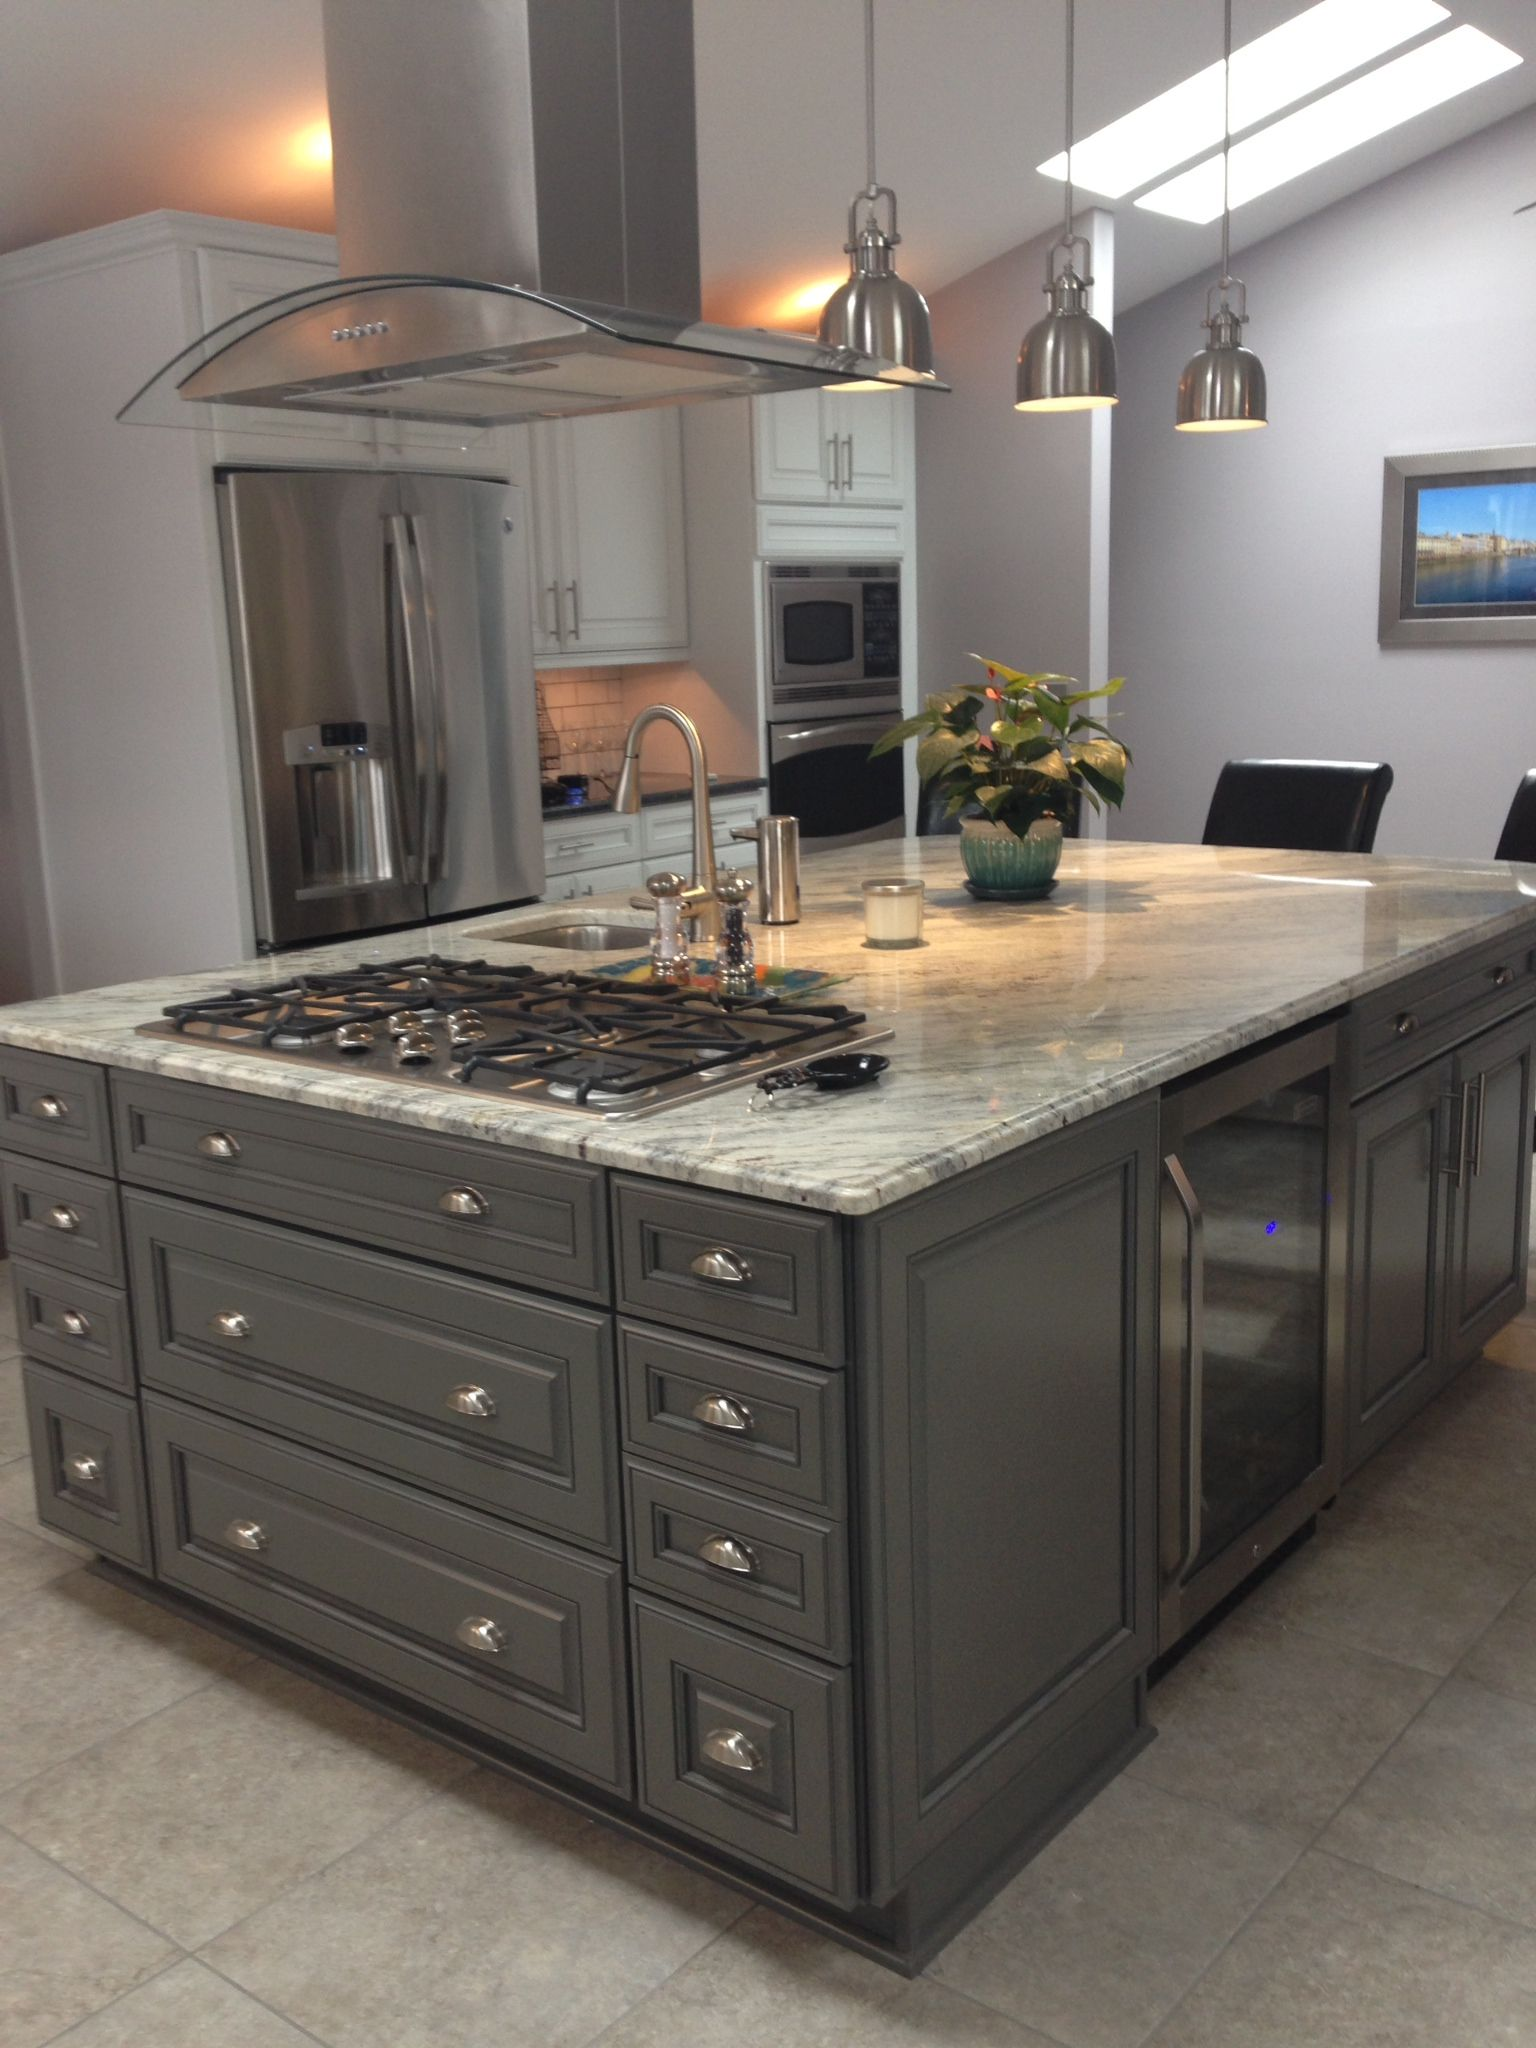 KITCHEN ISLAND WITH COOKTOP in 2019 Kitchen island with